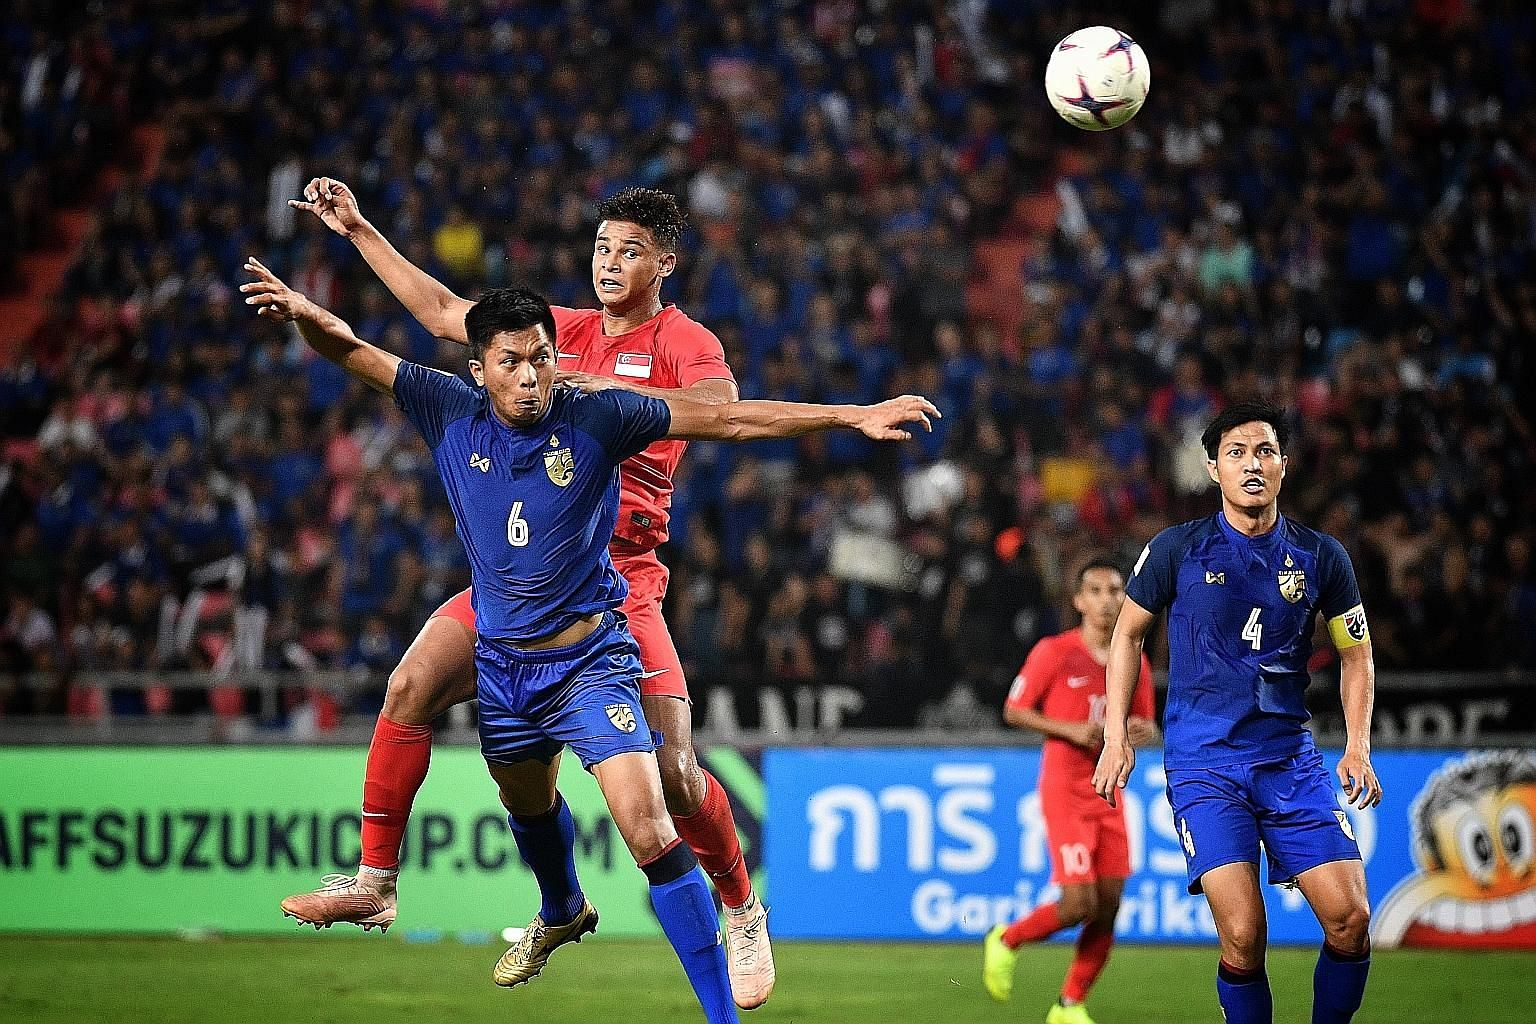 Singapore's Irfan Fandi and his teammates will be aiming to end a poor run at the Suzuki Cup - the Lions have not made it past the group stage into the two-legged semi-finals in the three editions since they last won the tournament in 2012 - when the